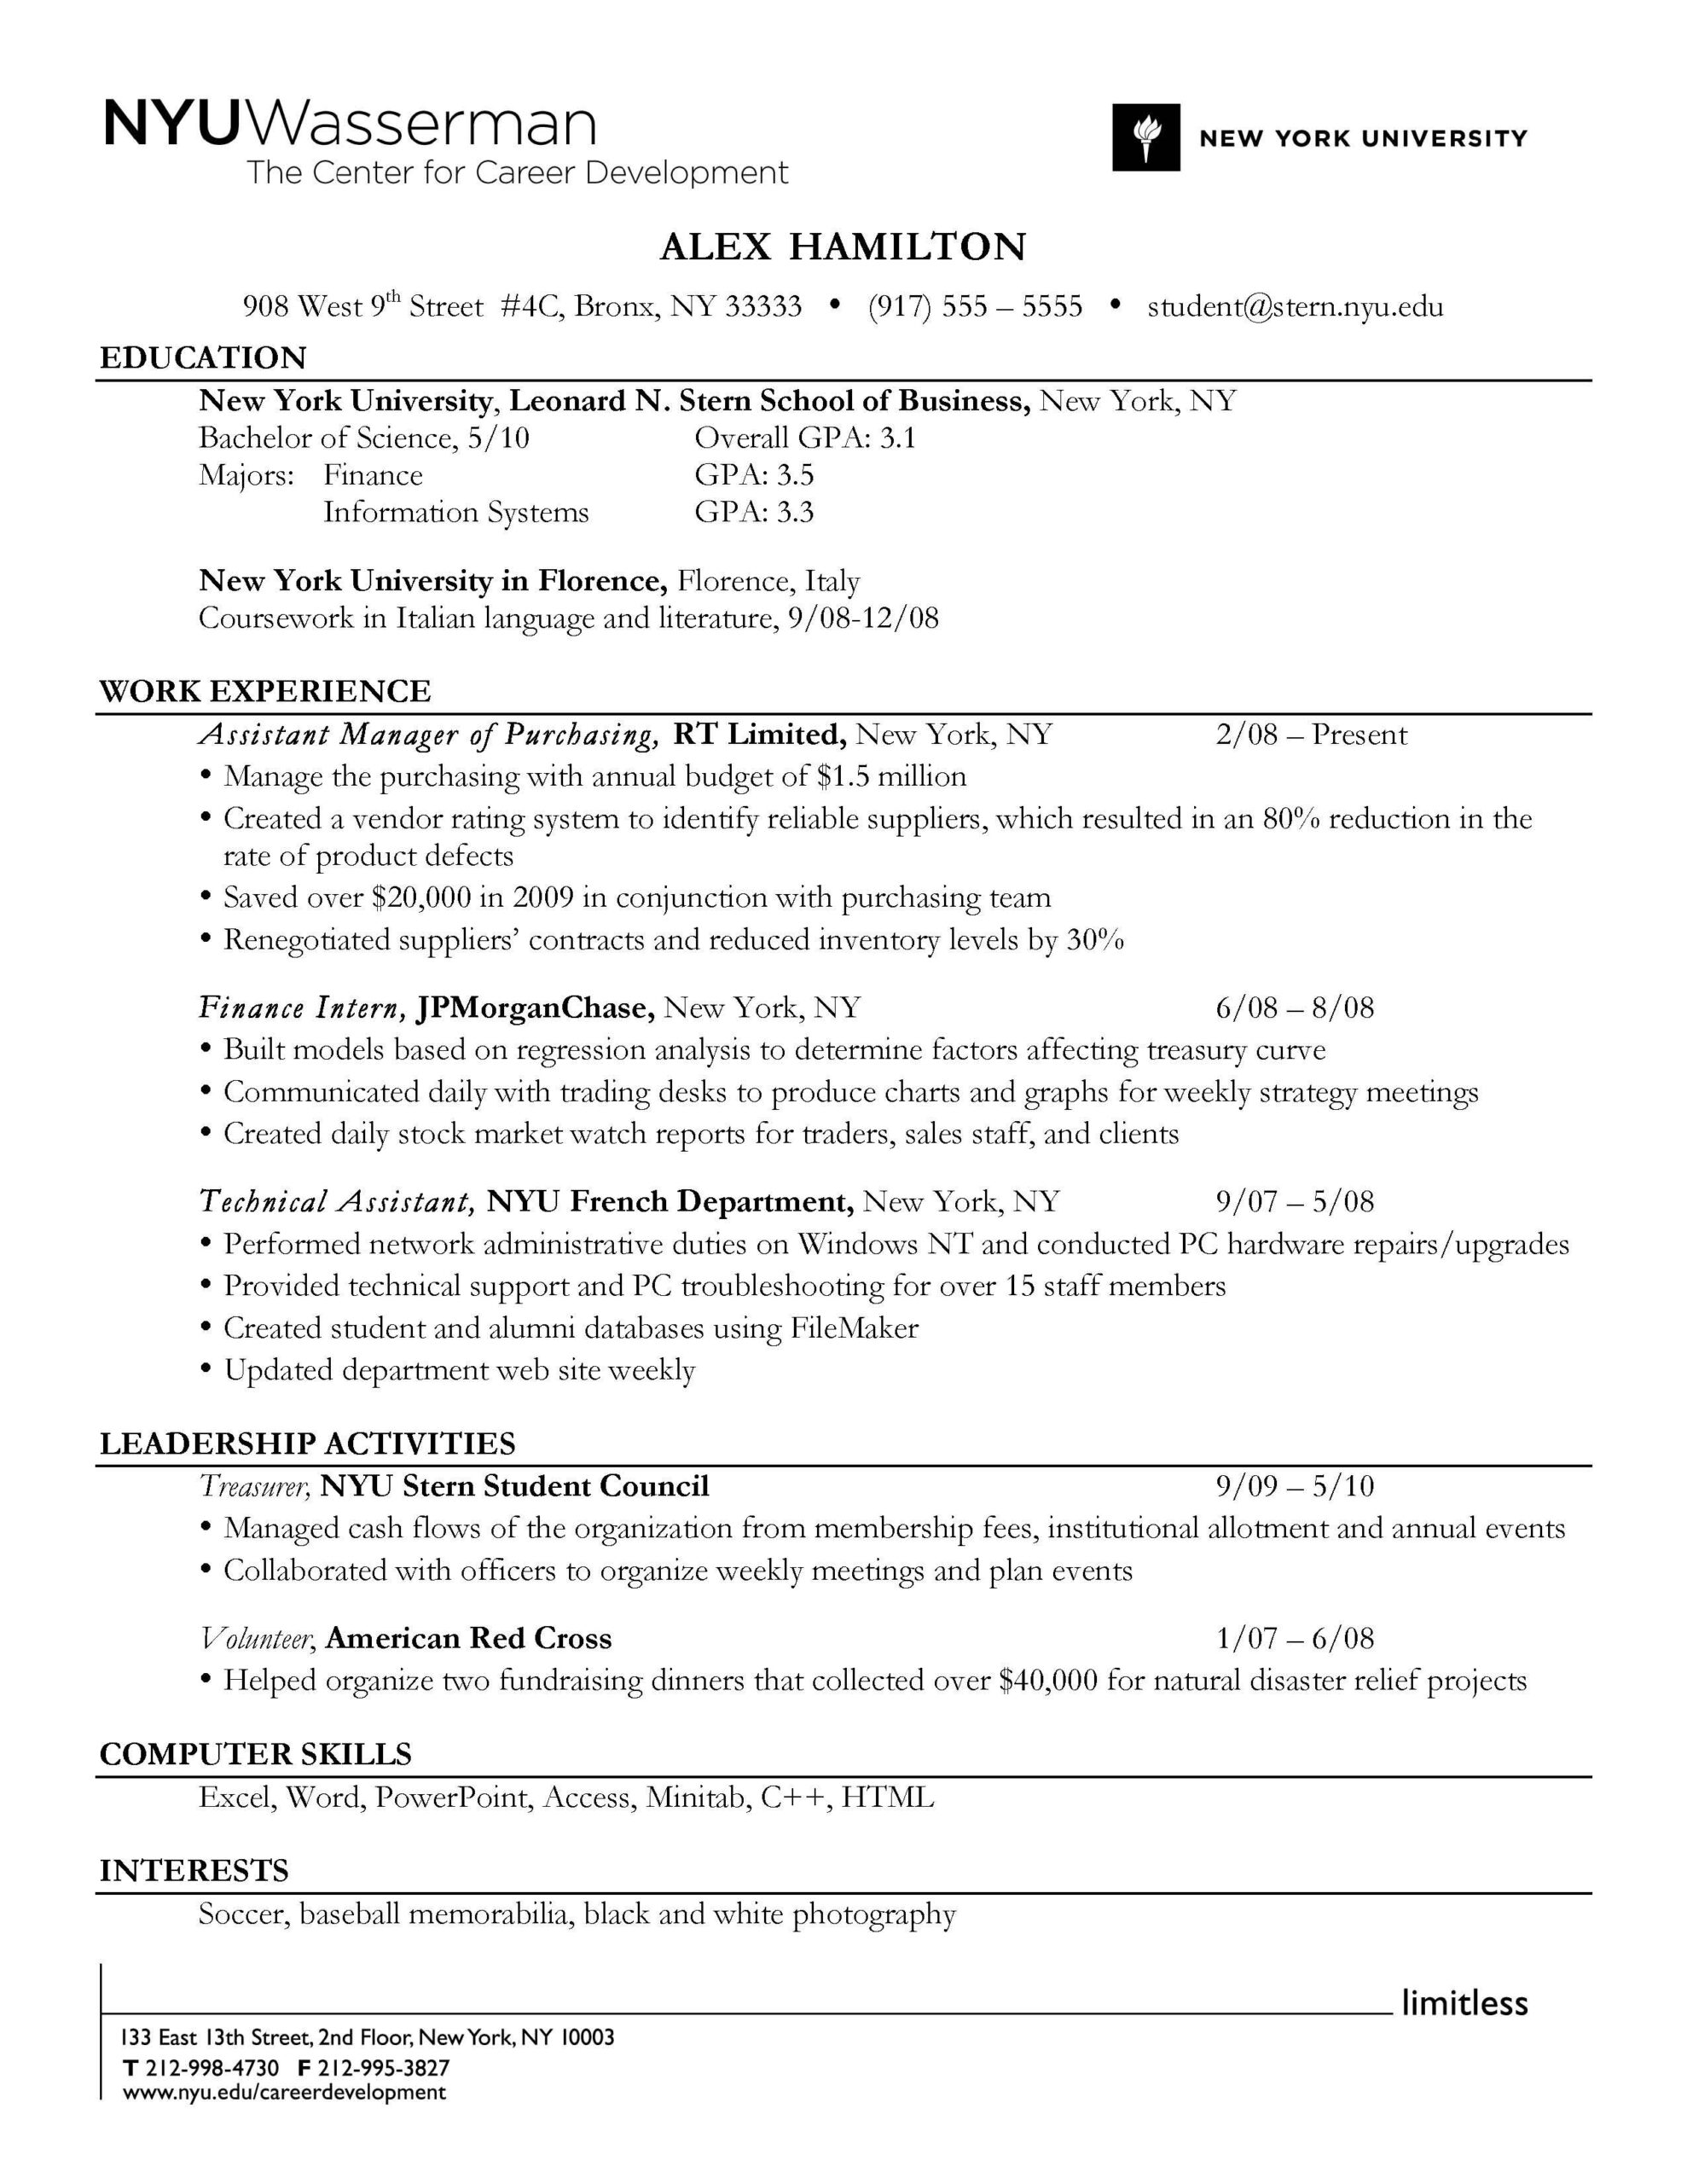 do use reverse chronological order resume format to highlight your education work Resume Order Of Education On Resume